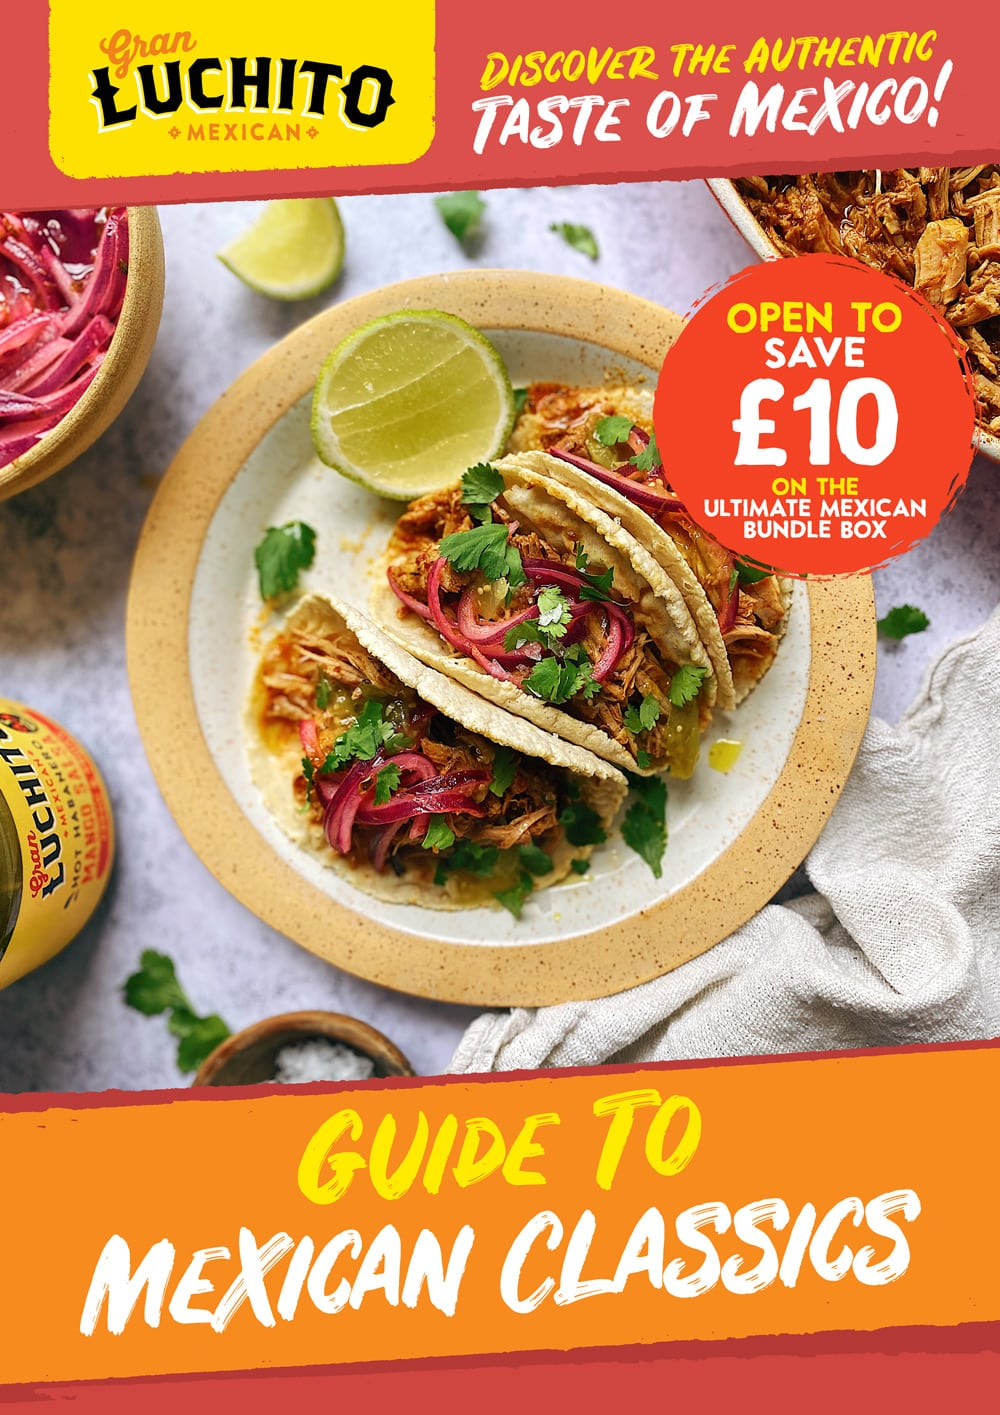 Sign up for our free guide to Mexican Classics